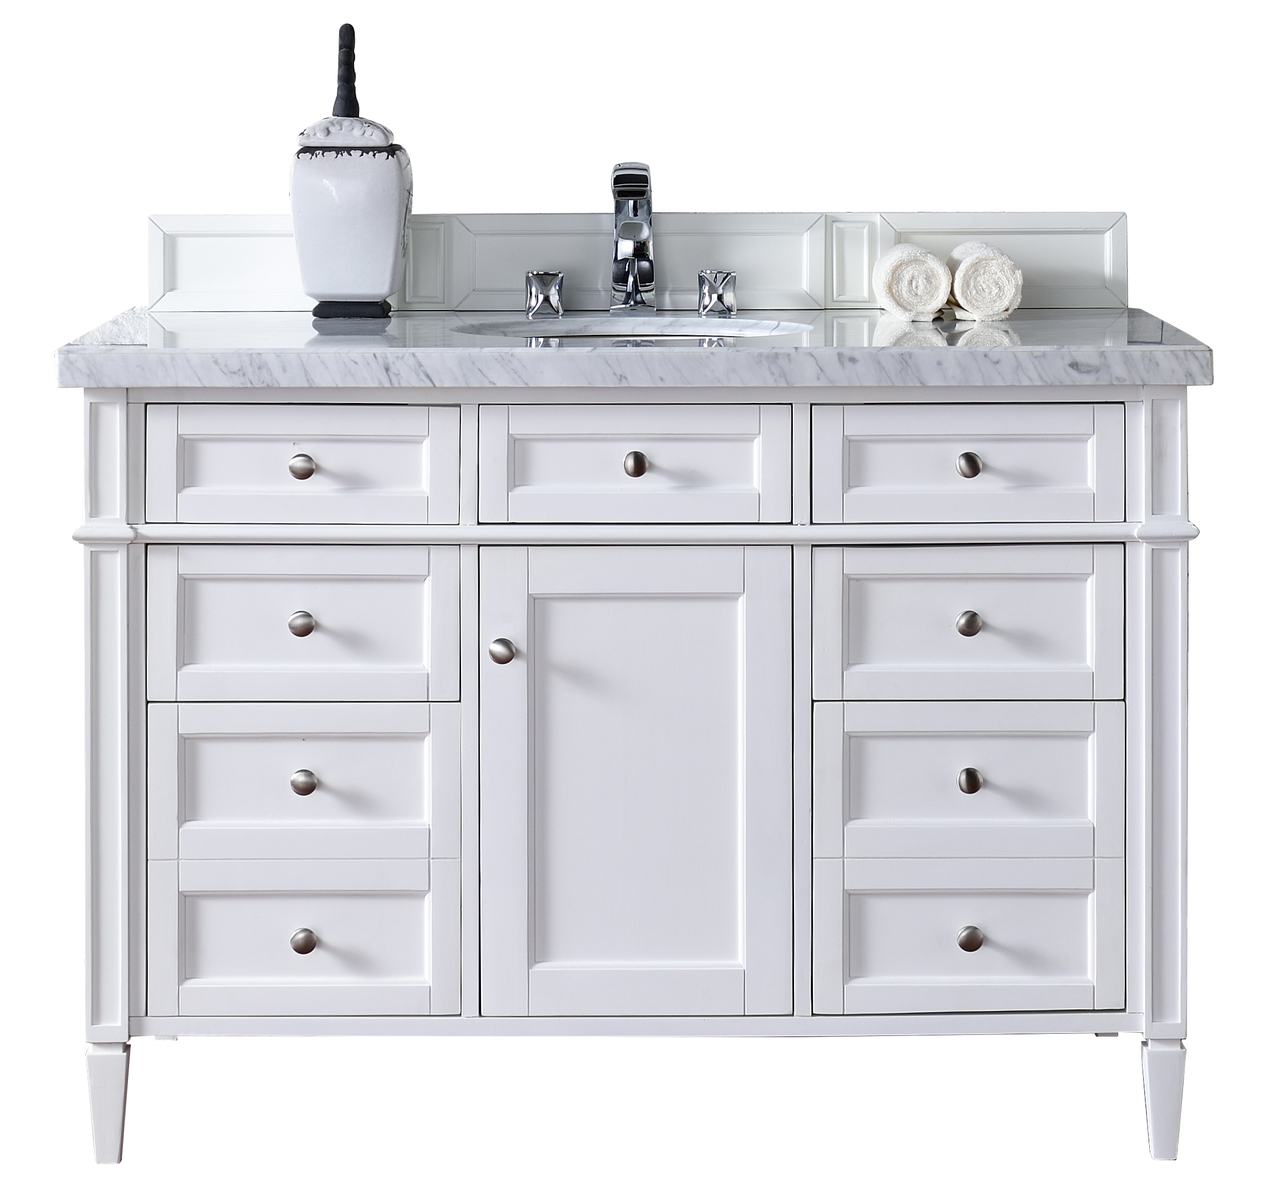 Contemporary  Inch Single Bathroom Vanity White Finish No Top - Bathroom vanity no sink